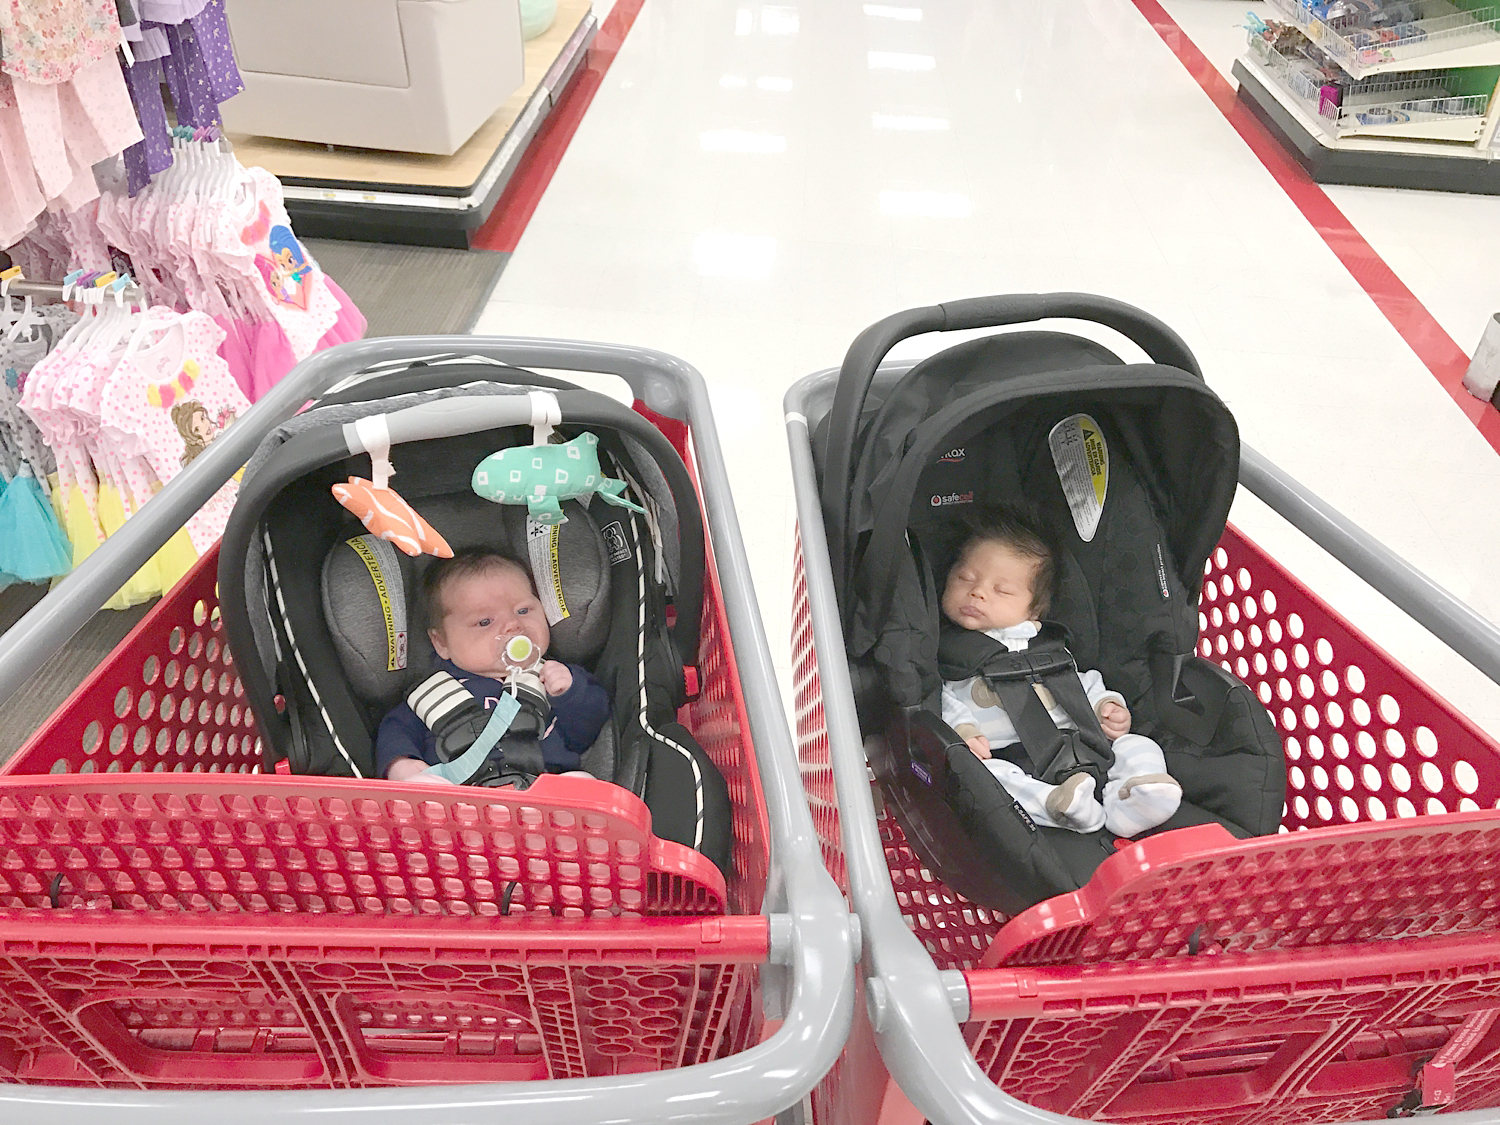 First Target trip!! It was great except it was so windy outside and my cart blew into the street with the carseat in it. I looked like an idiot running after it haha!